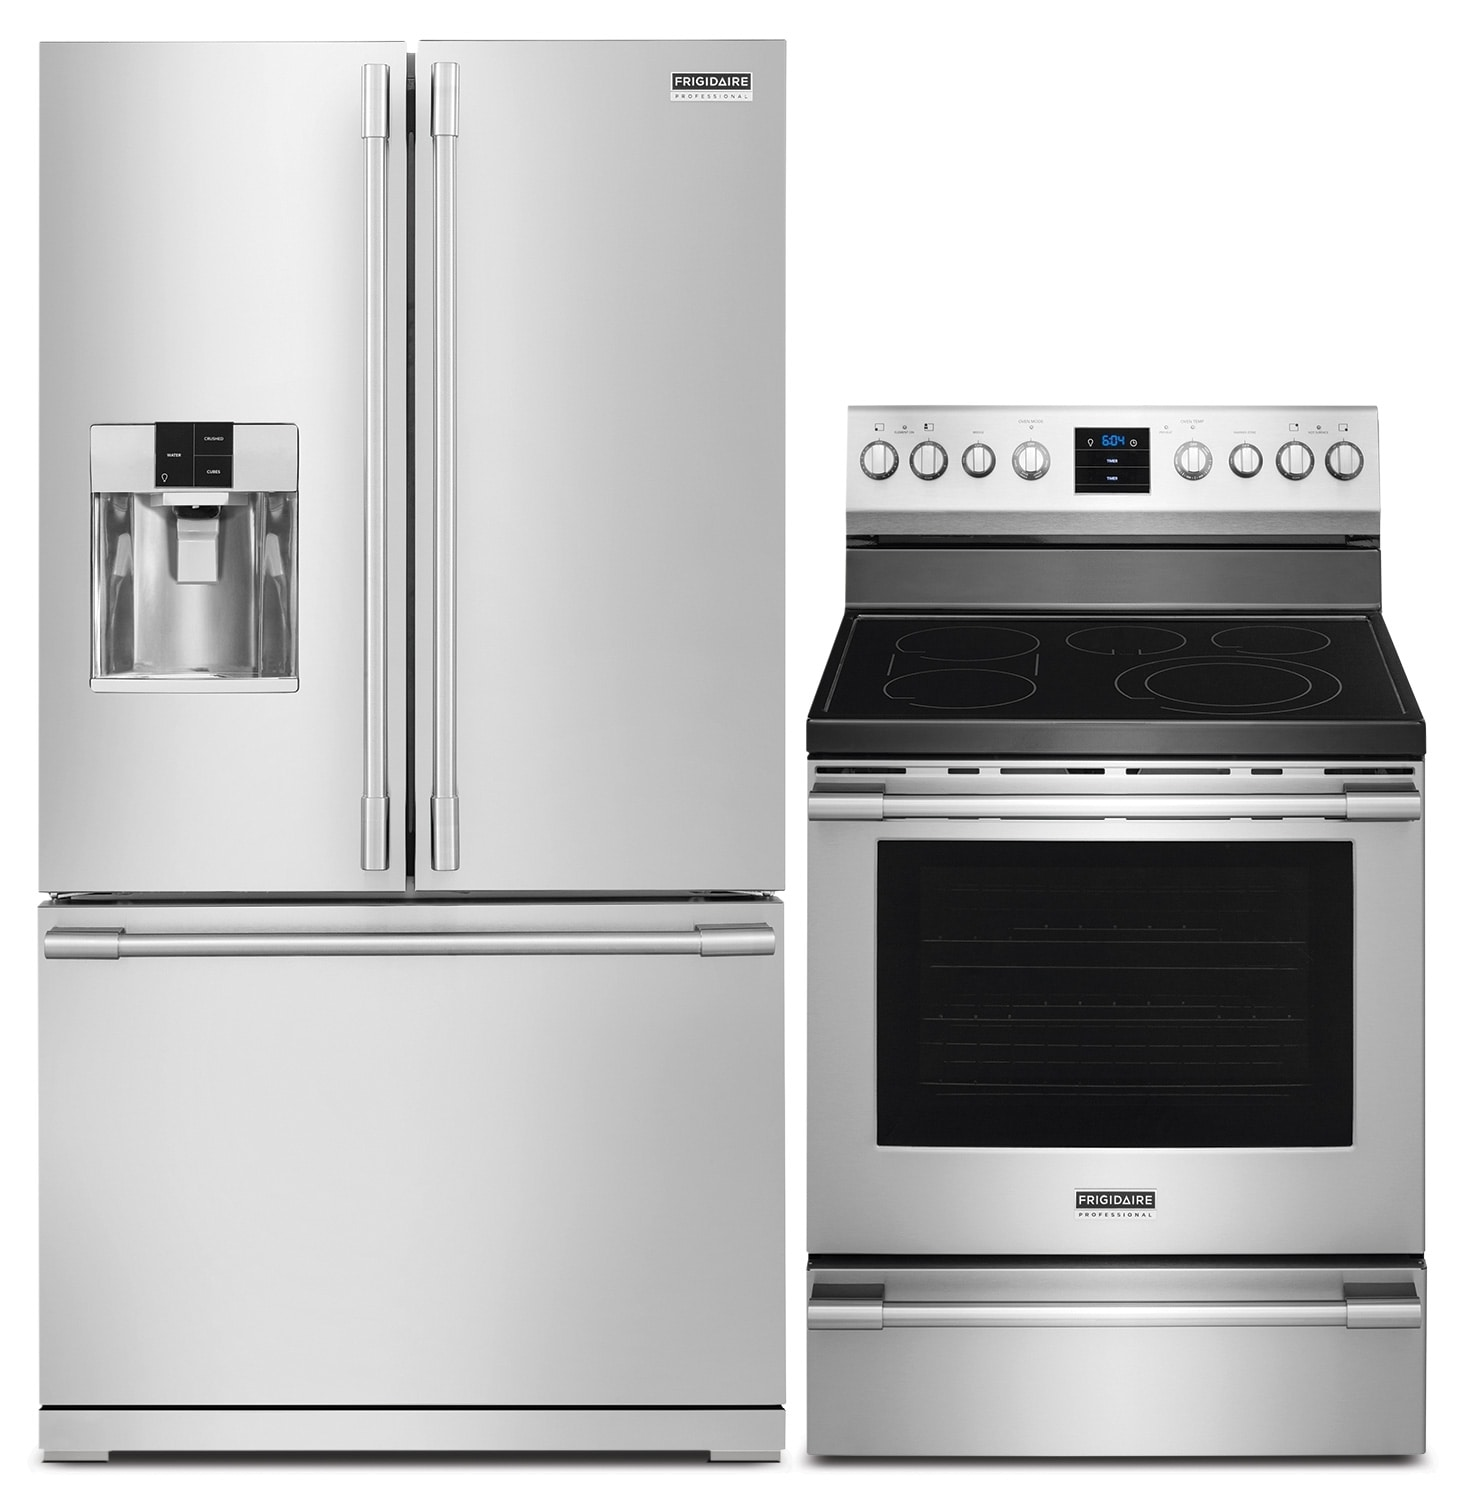 Cooking Products - Frigidaire 27.8 Cu. Ft. Refrigerator and Convection Range - Stainless Steel